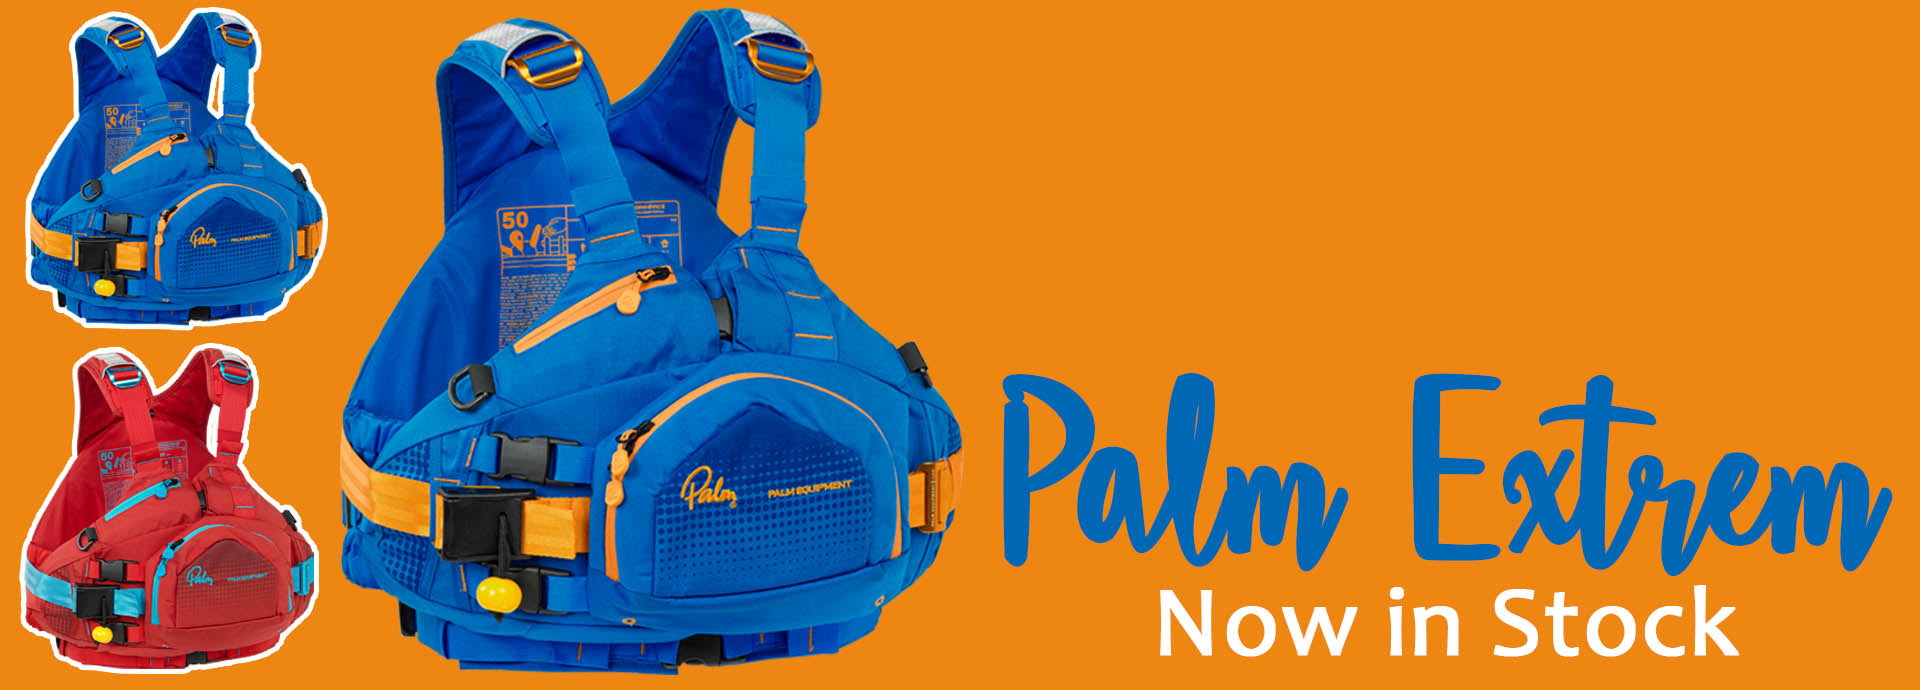 New Palm Extrem PFD